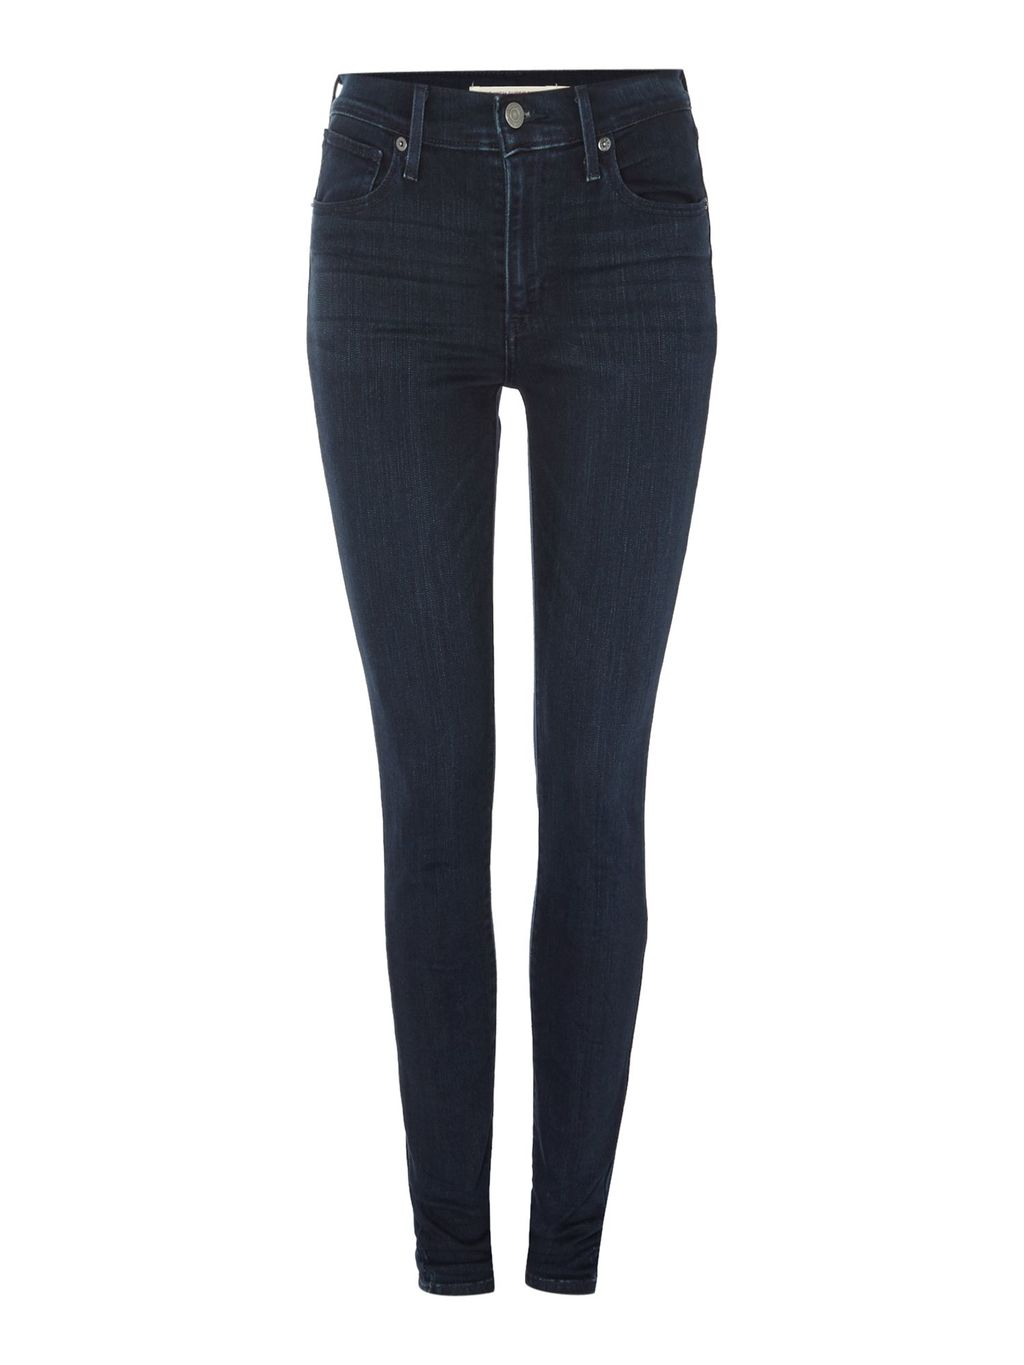 Mile High Super Skinny In Daydreaming, Denim Mid Wash - style: skinny leg; length: standard; pattern: plain; pocket detail: traditional 5 pocket; waist: mid/regular rise; predominant colour: navy; occasions: casual; fibres: cotton - stretch; texture group: denim; pattern type: fabric; season: s/s 2016; wardrobe: basic